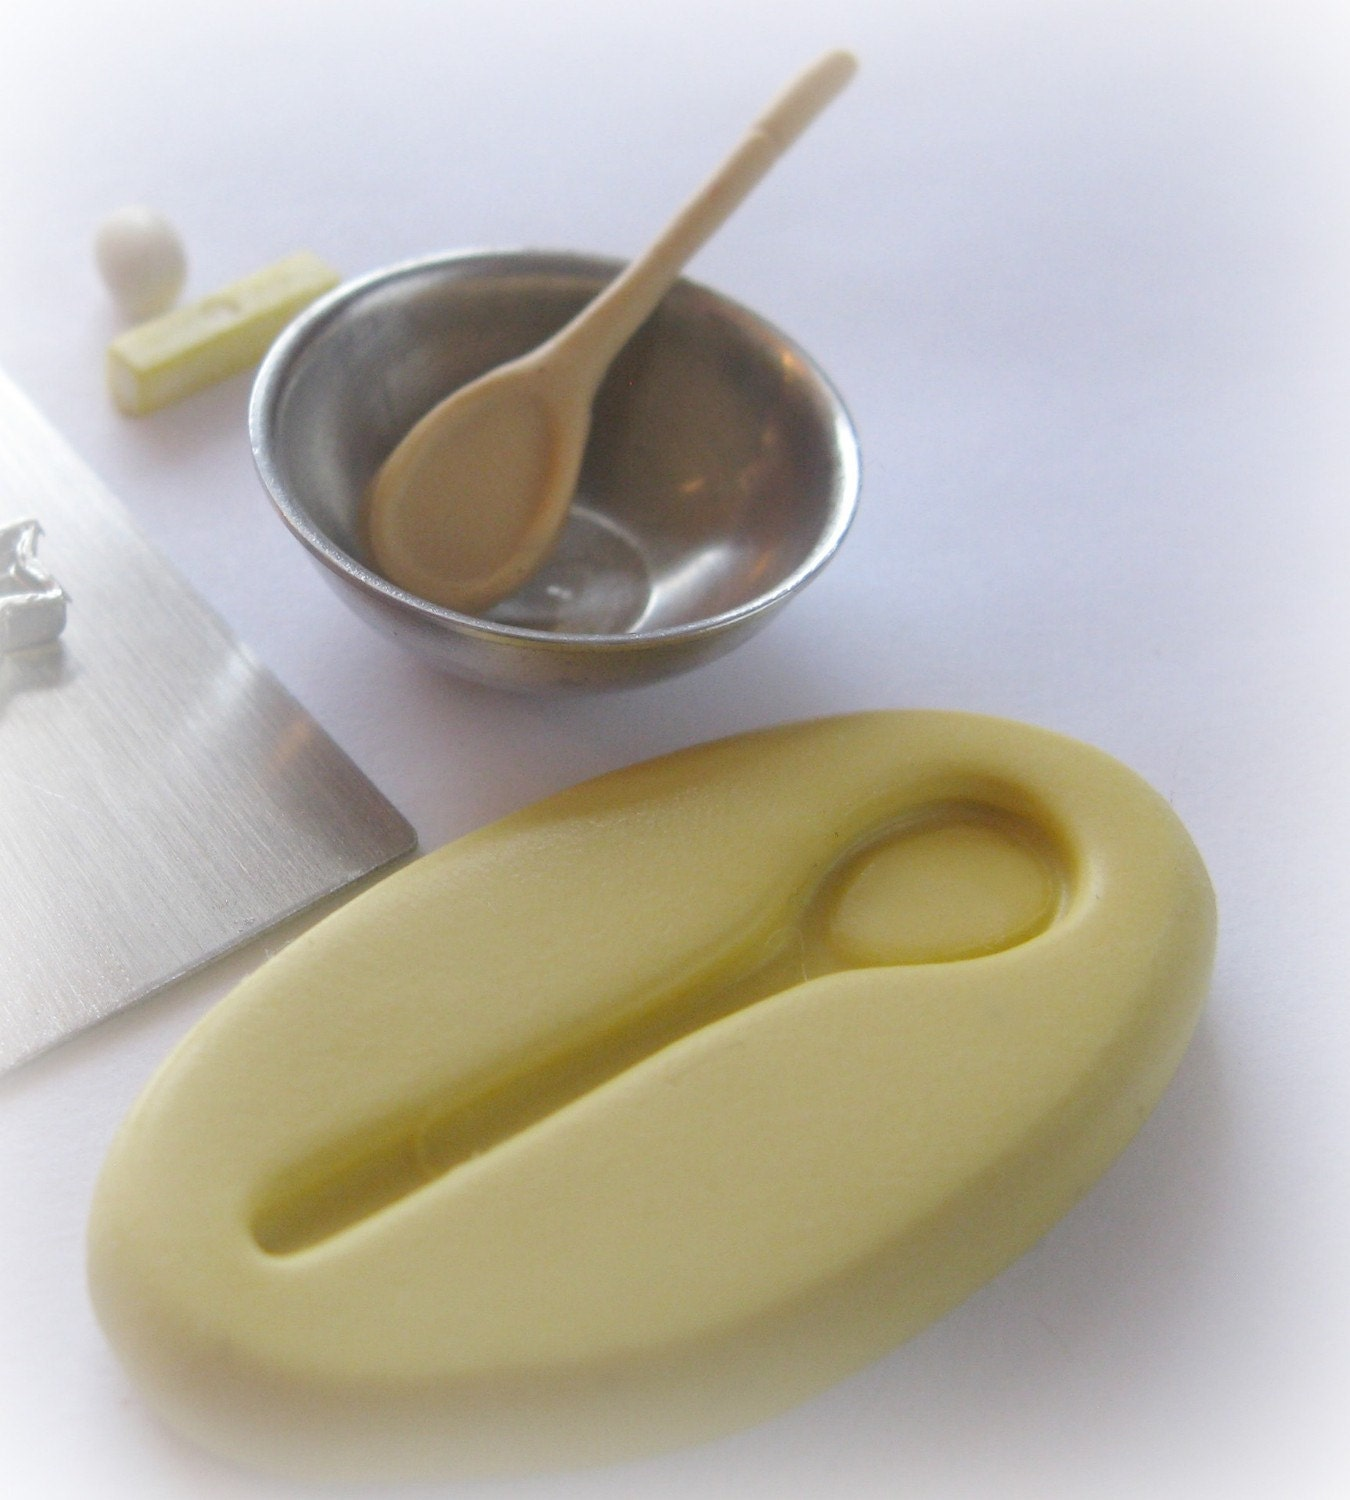 From Musty To Must See Kitchen: Miniature Wooden Spoon Mold DIY Miniatures Kitchen Cooking